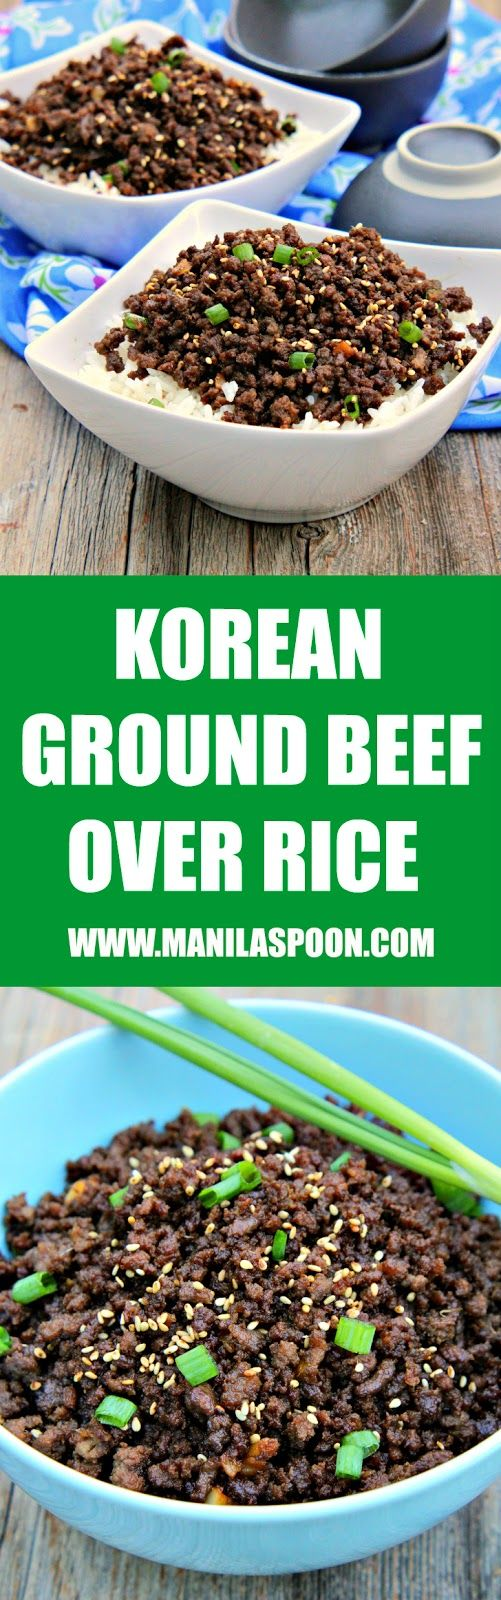 Sweet, salty, with a little spicy kick, if you like, this quick and easy Korean Ground Beef over Rice will please your taste buds! Done in 20 minutes or less. Can be made Paleo-friendly.   manilaspoon.com